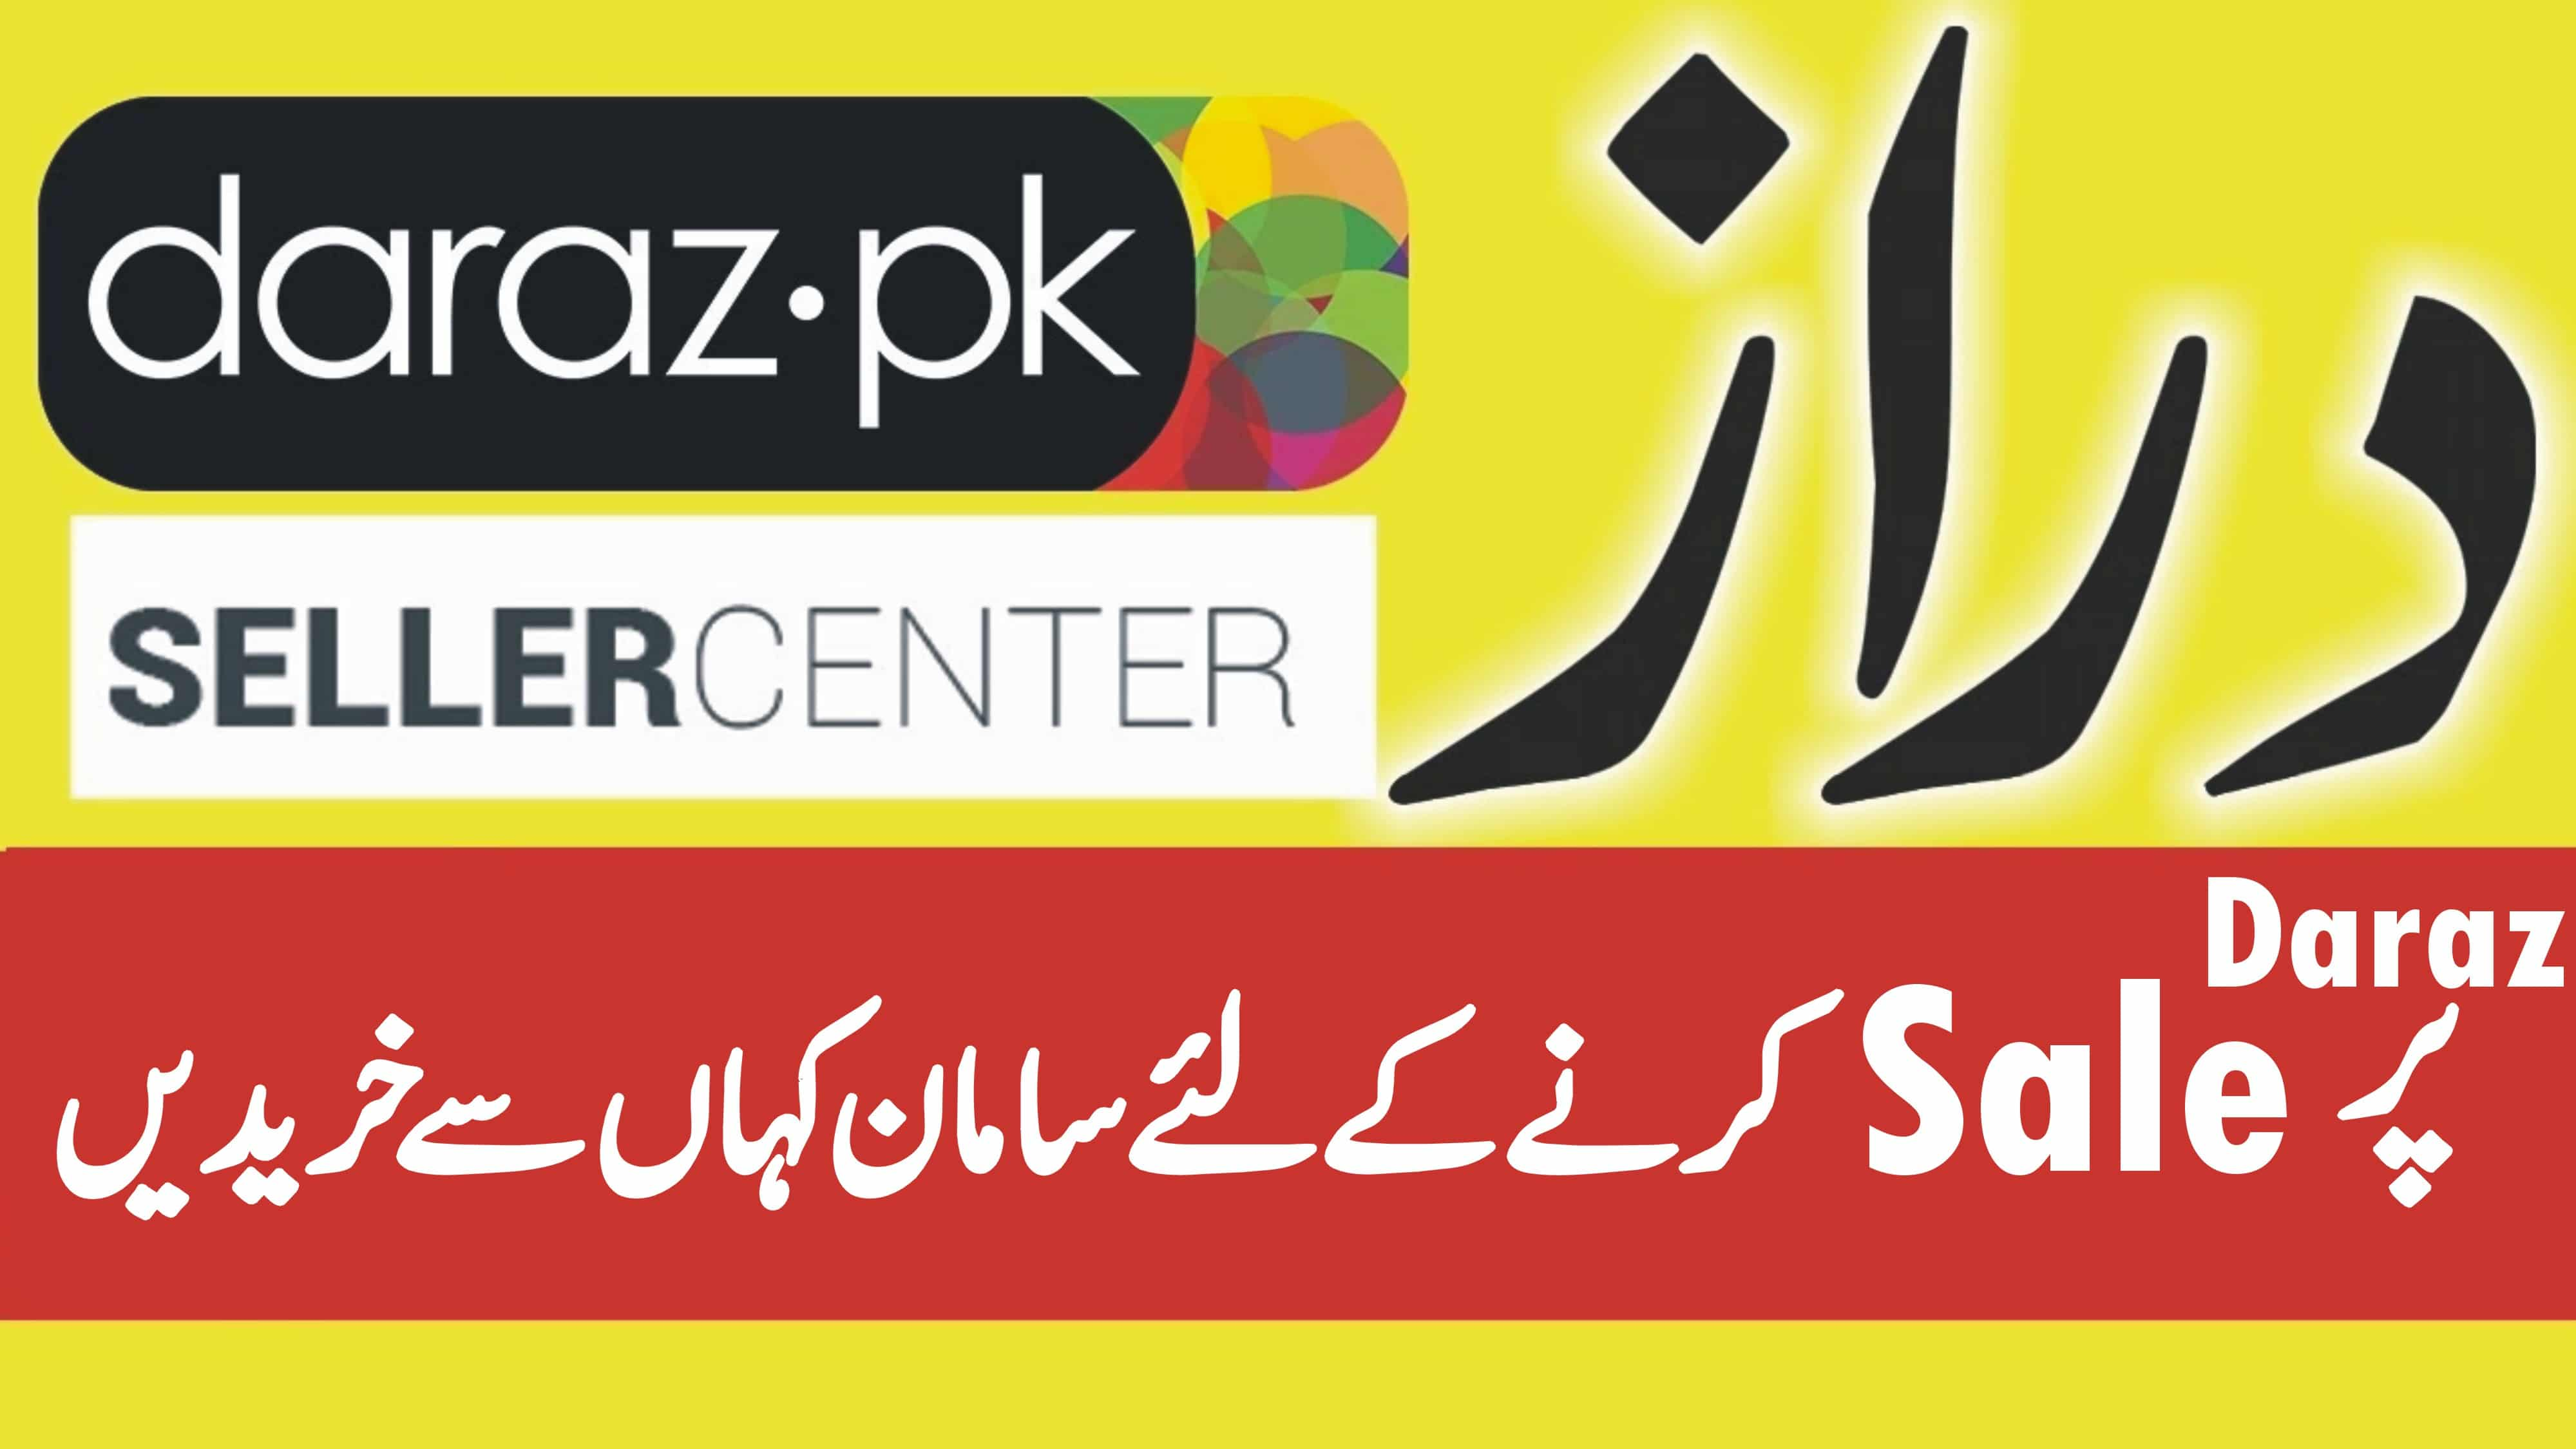 Where to Buy Products to Sale on Daraz – Best Daraz Seller Tips